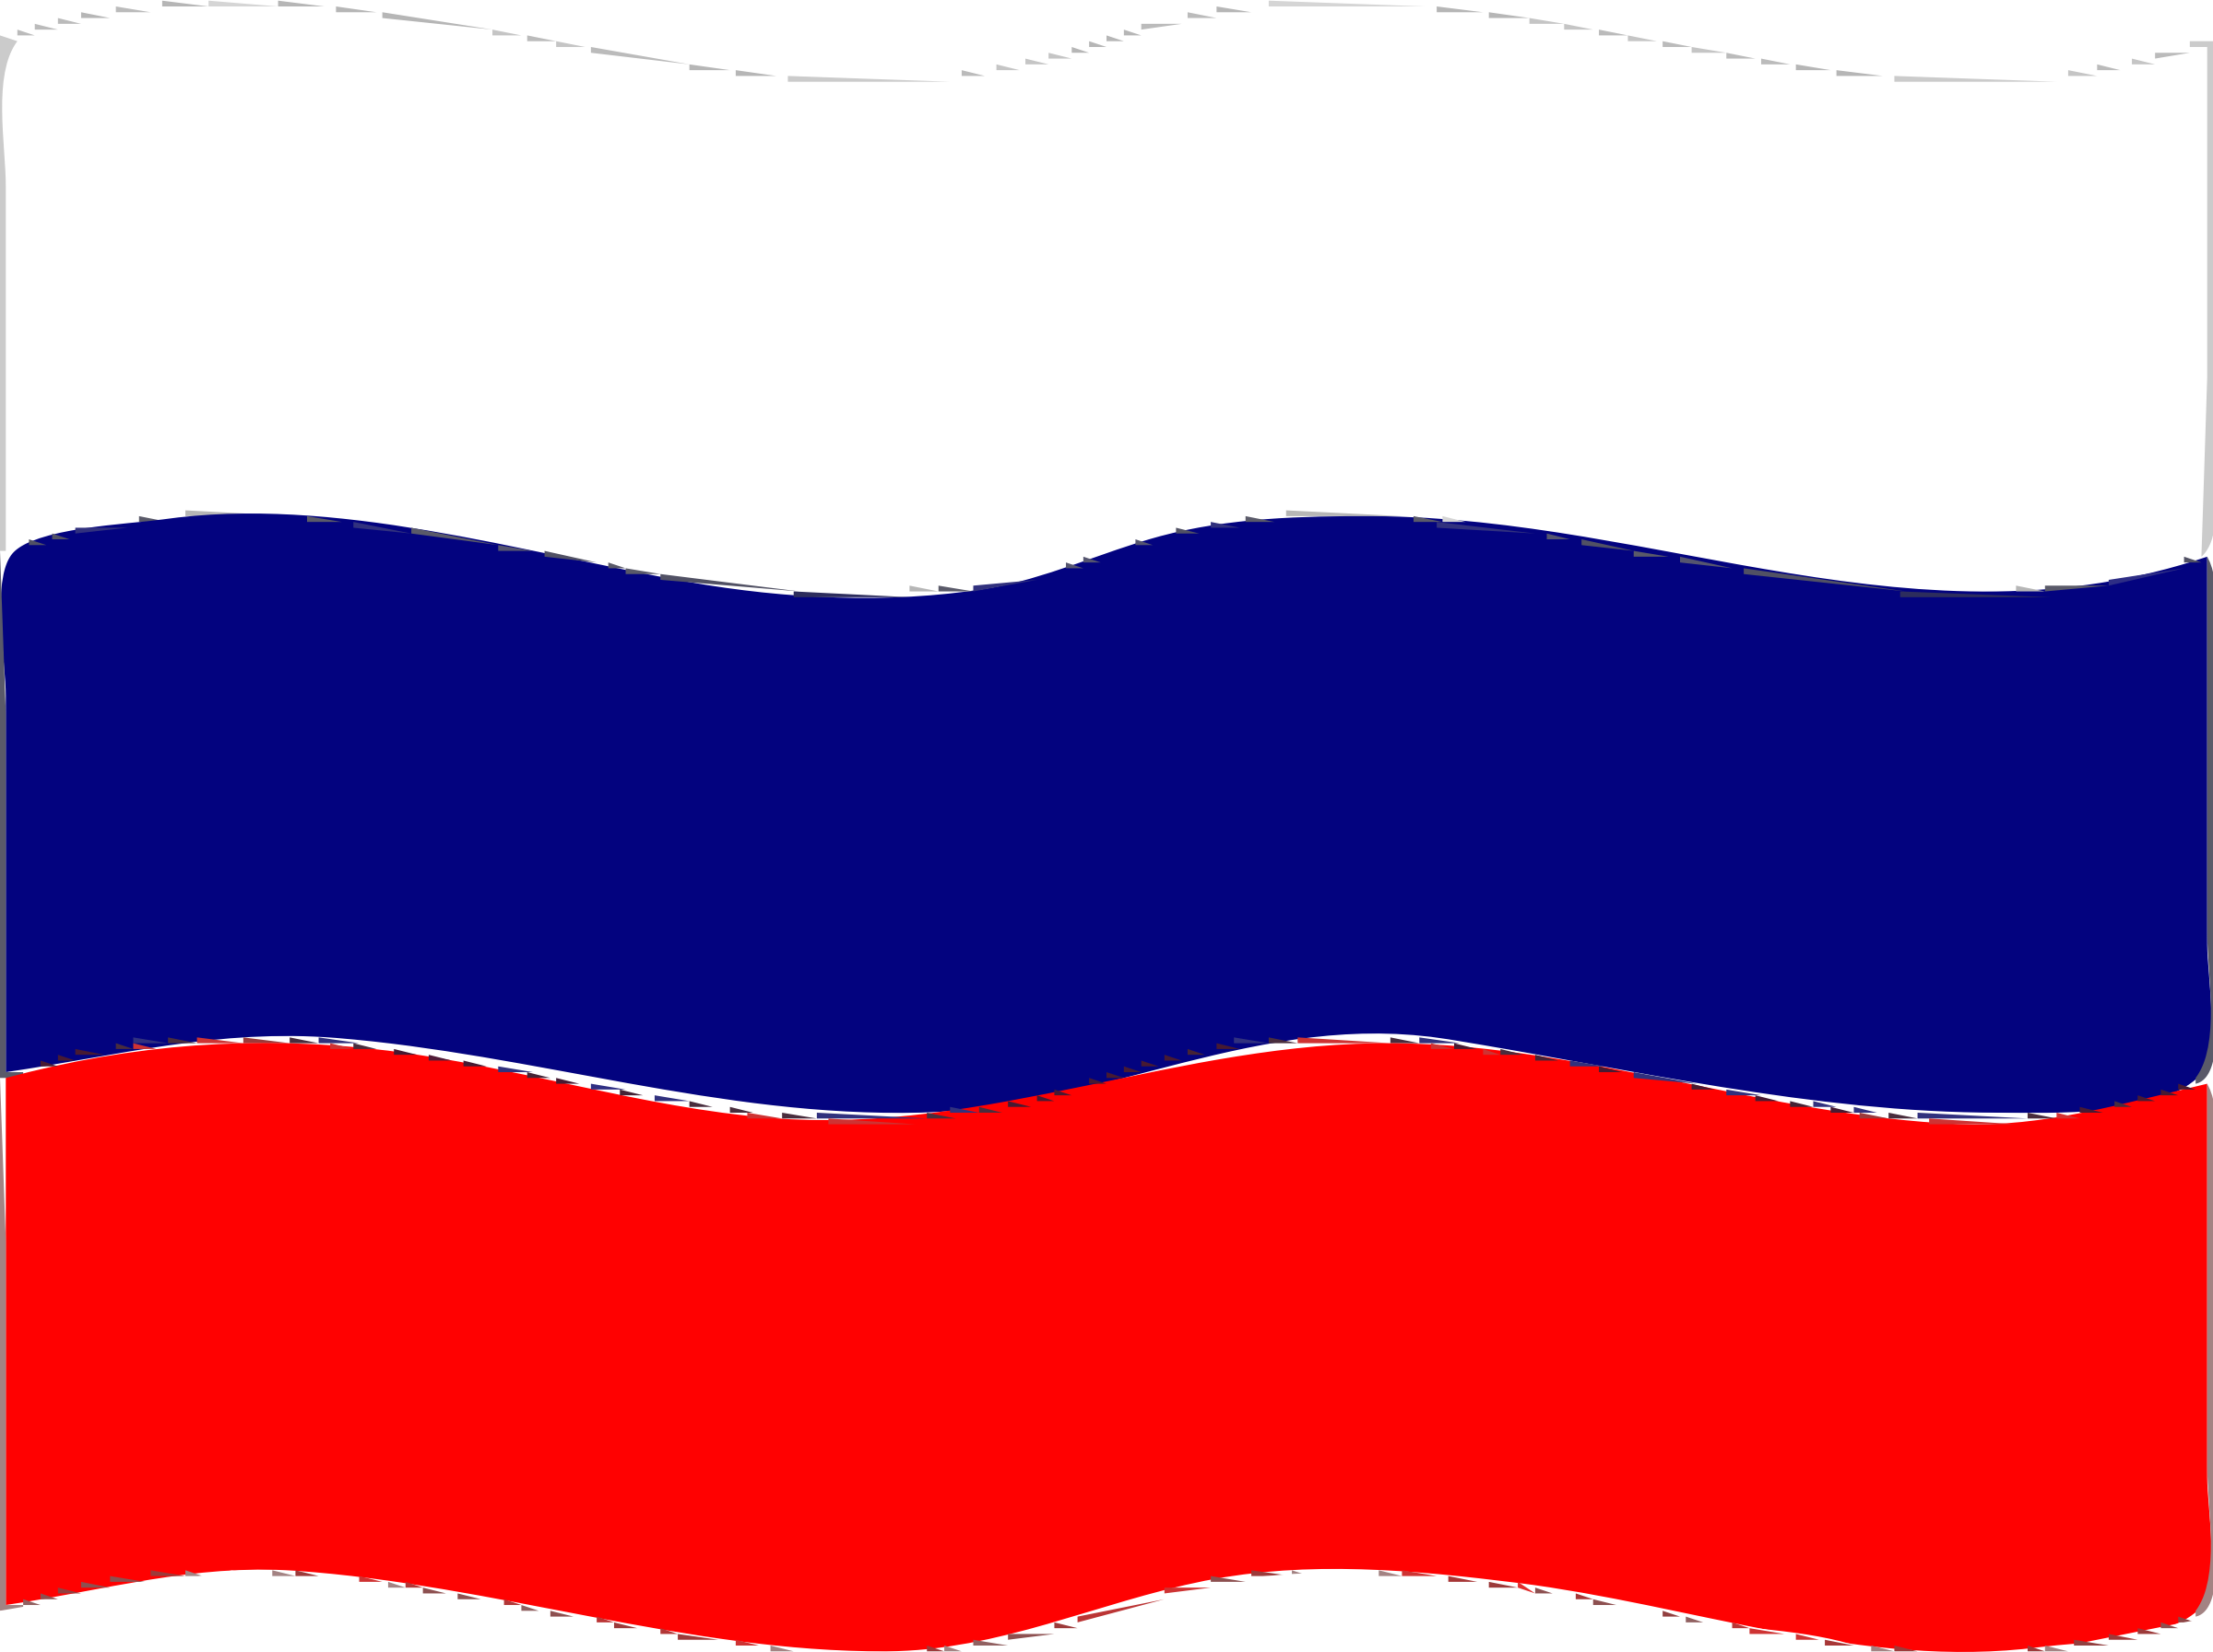 Flag of Russia wave by Joesph